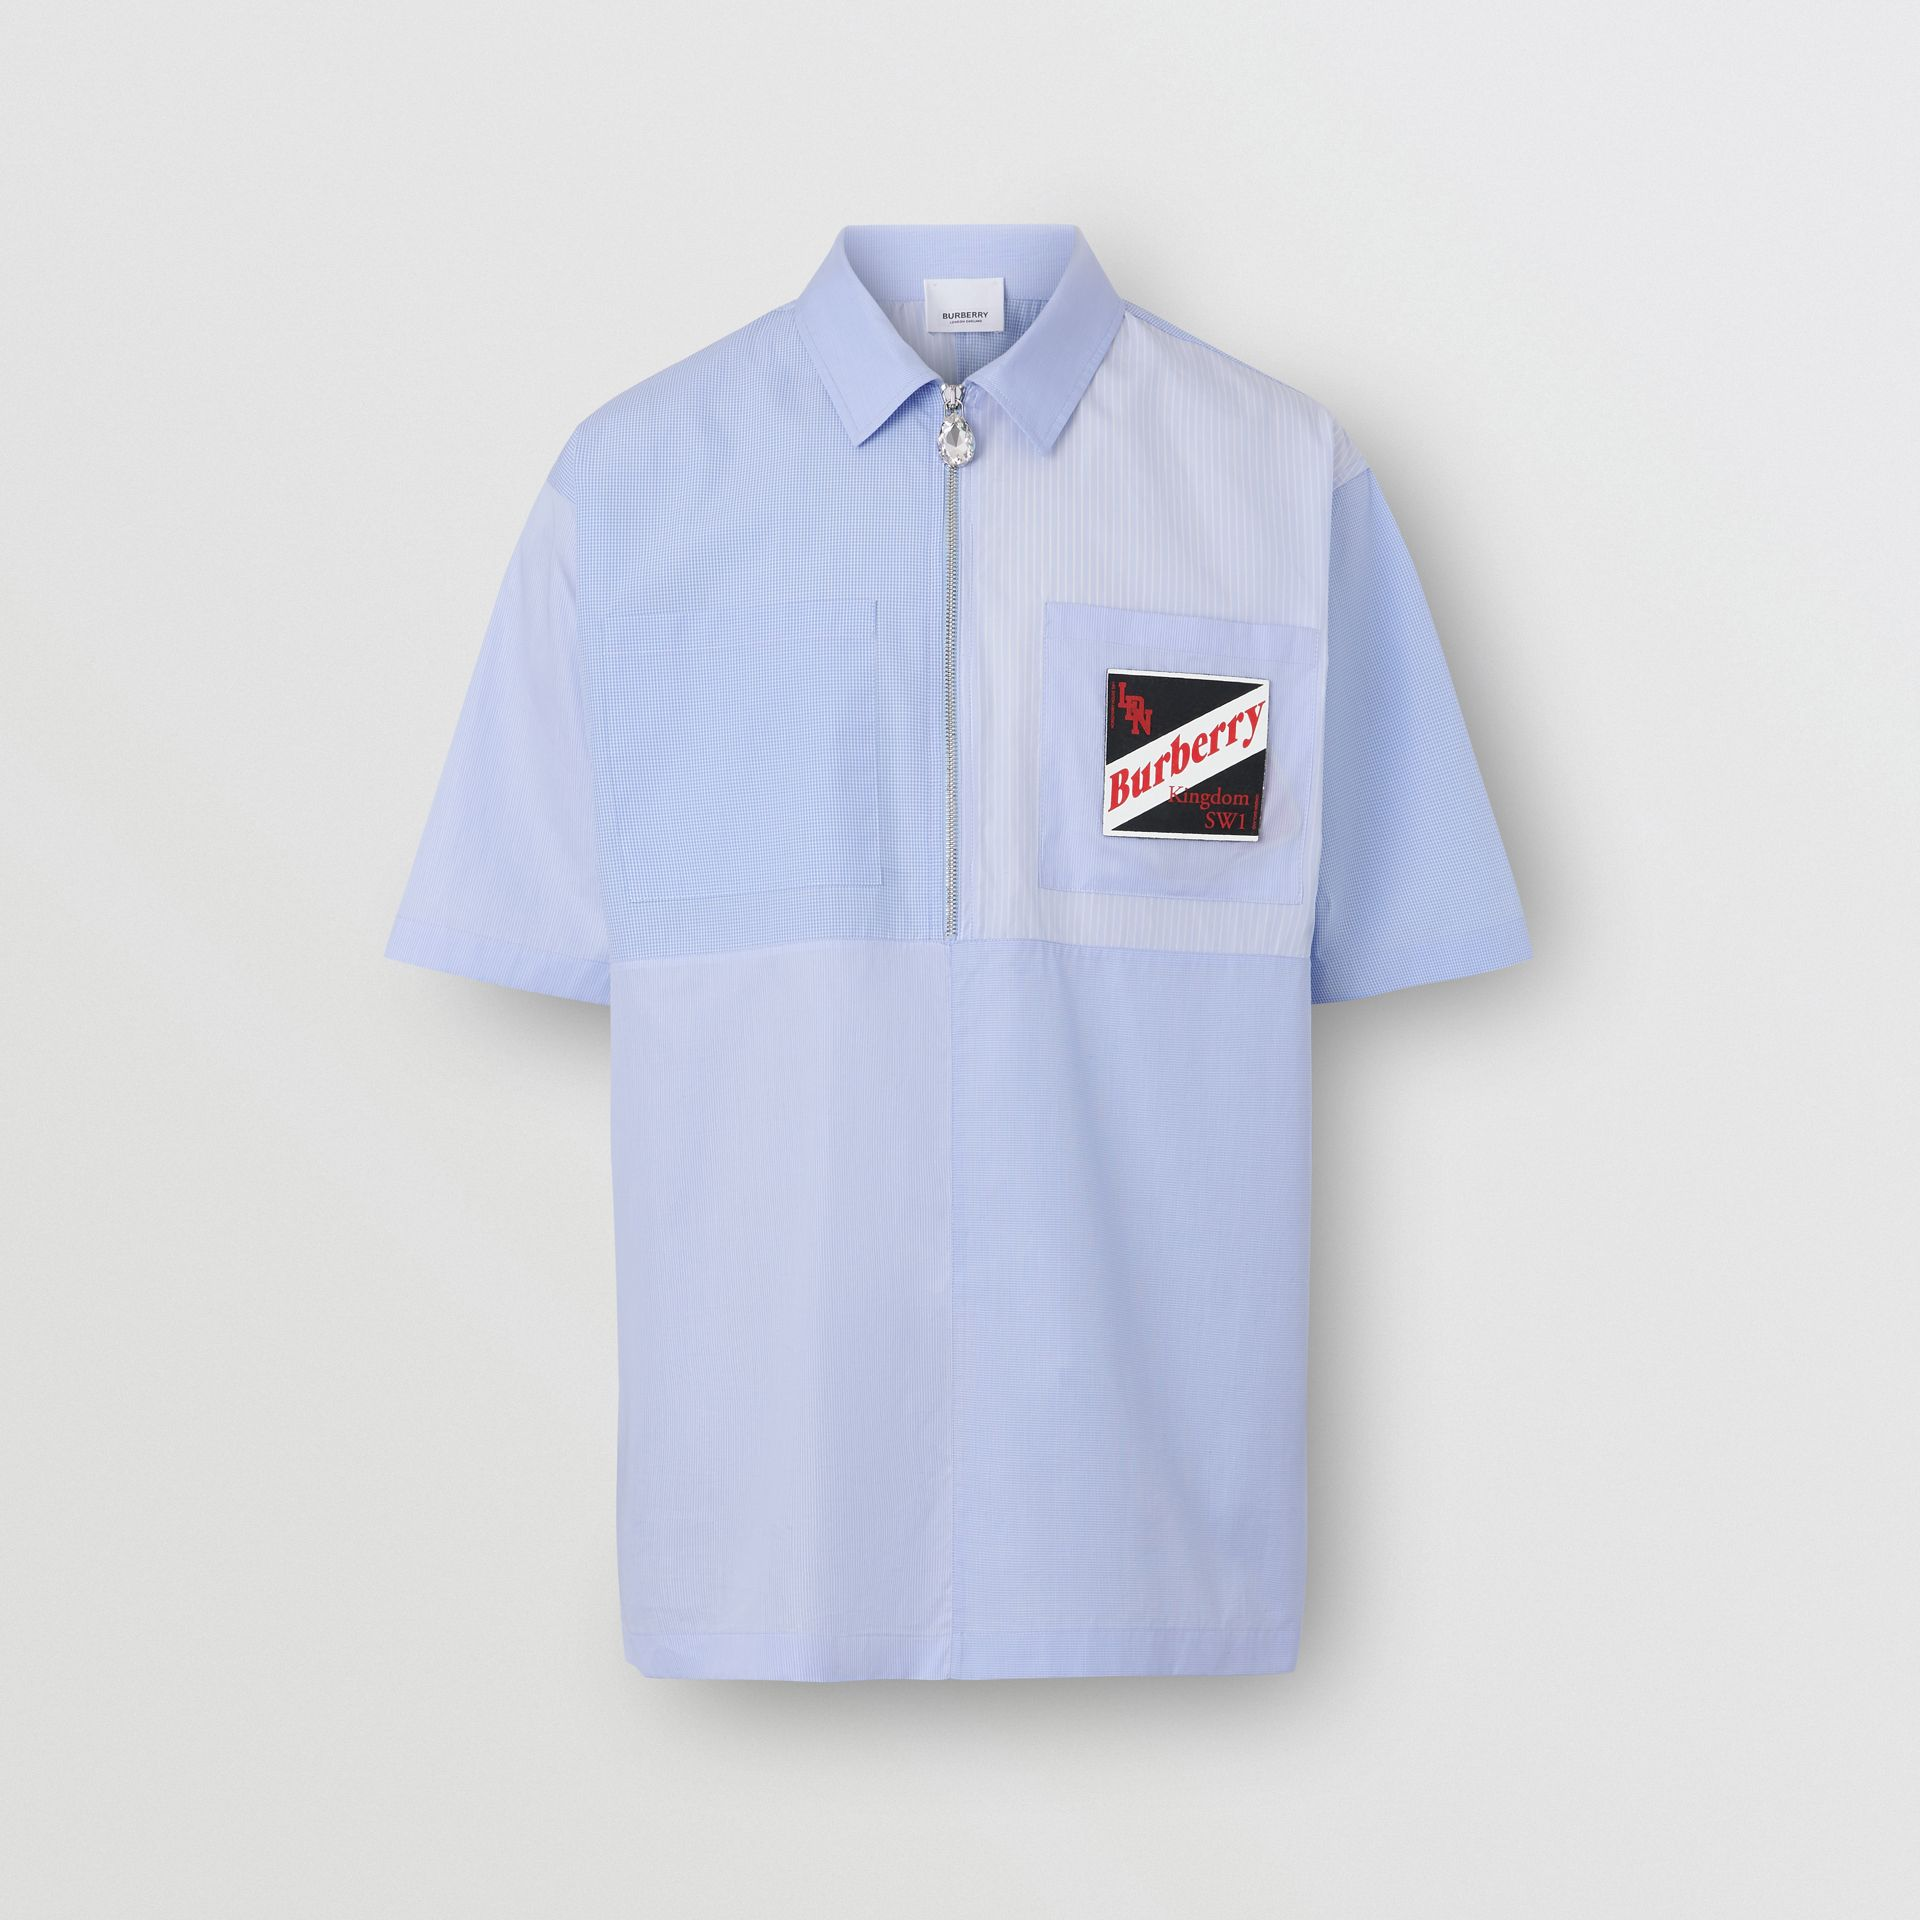 Short-sleeve Logo Graphic Patchwork Cotton Shirt in Pale Blue - Men | Burberry - gallery image 3